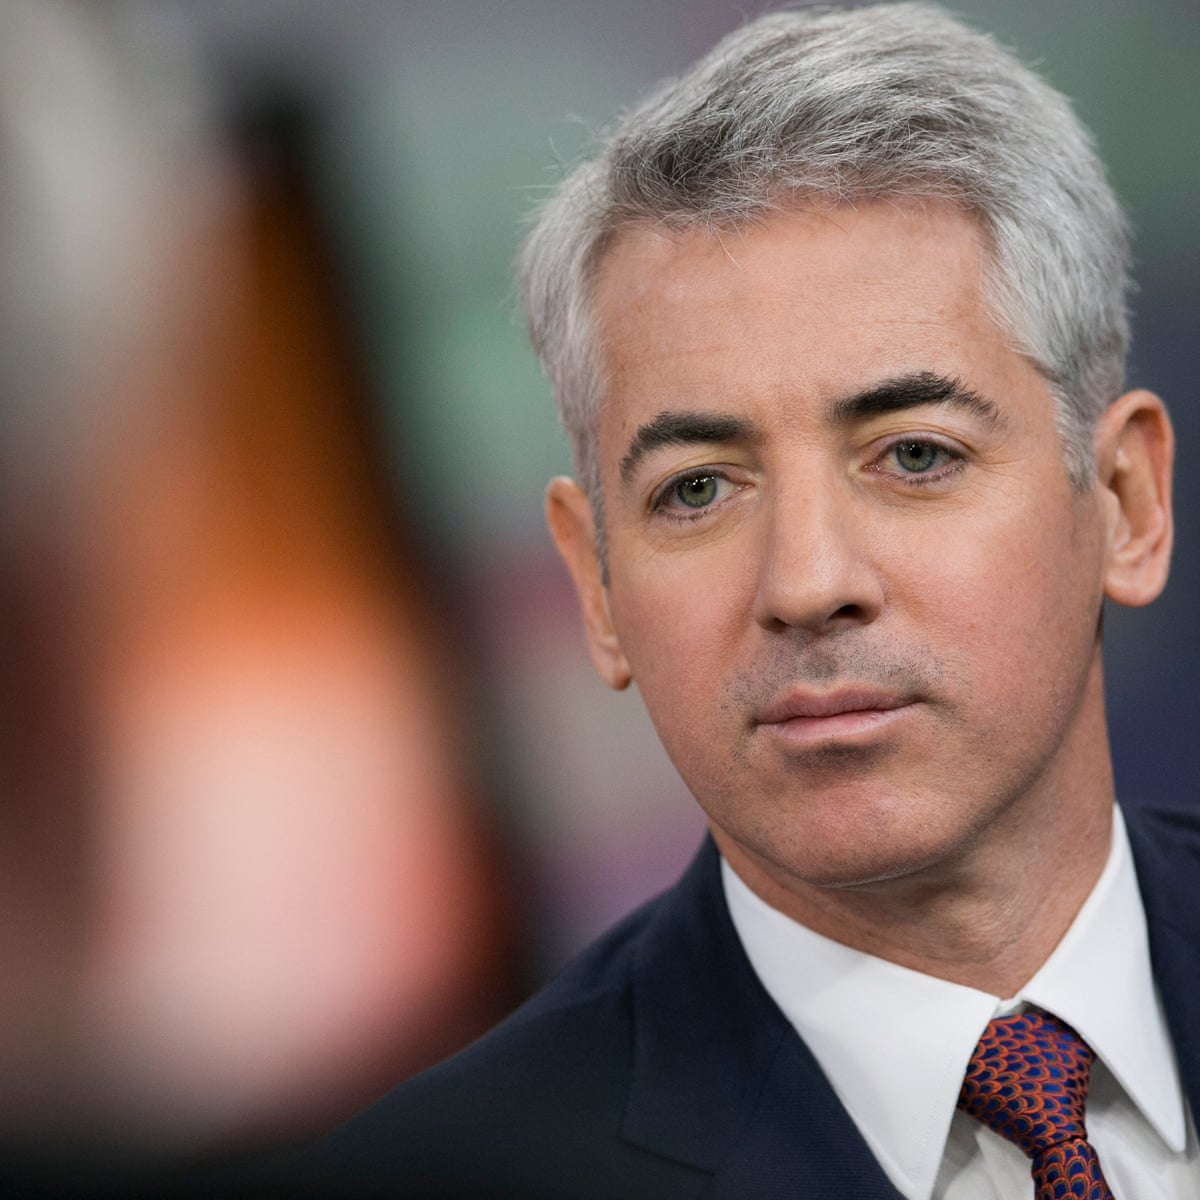 Hell is coming': how Bill Ackman's TV interview tanked the markets ...